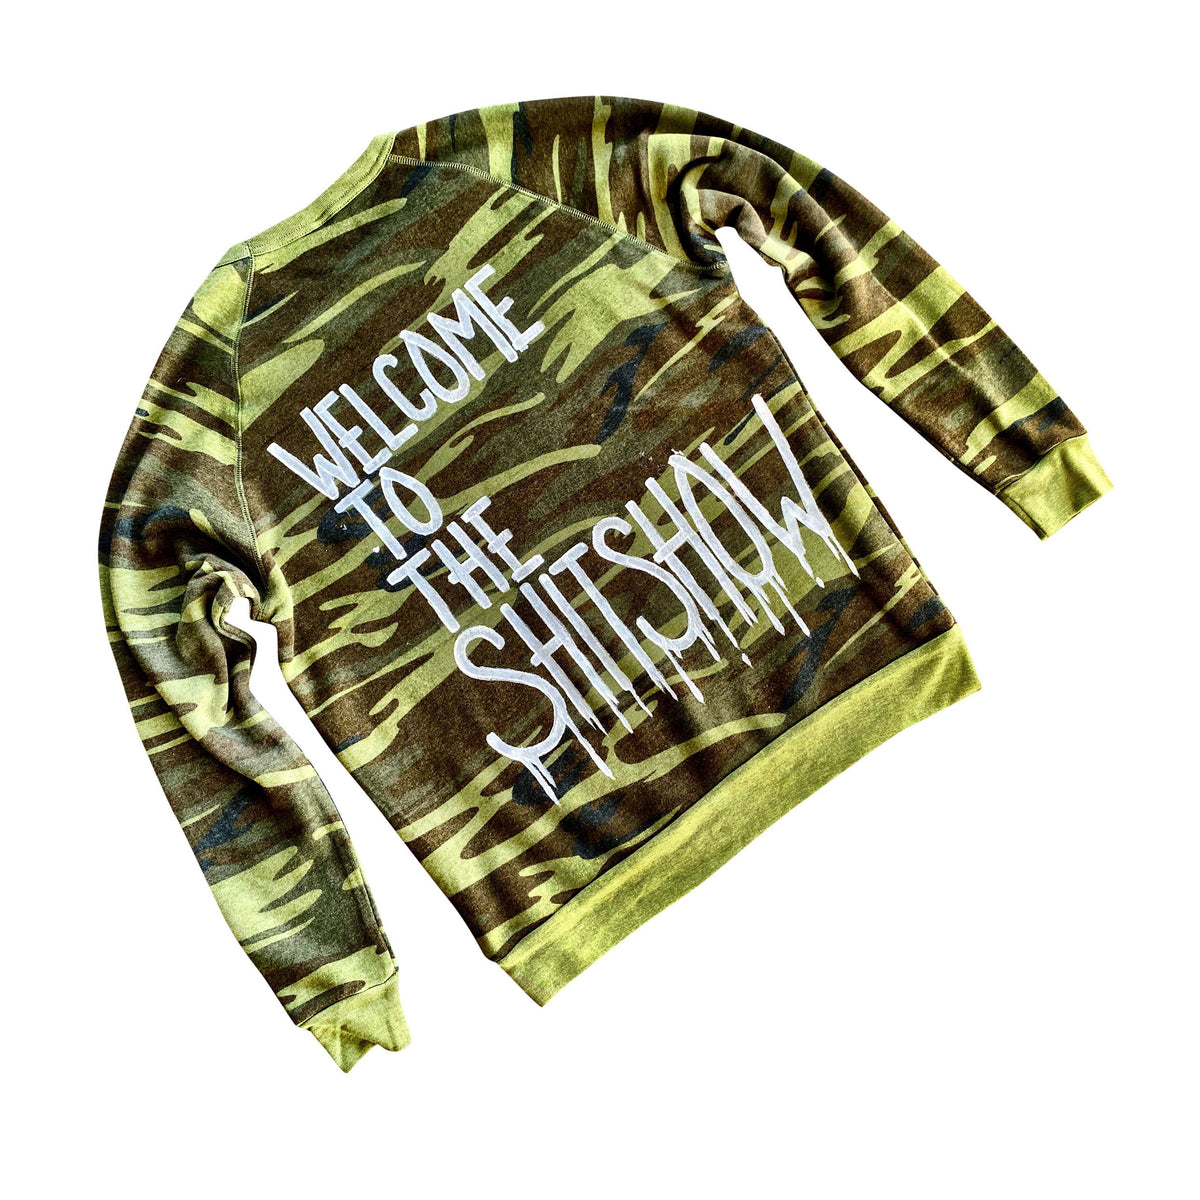 The perfect Camo crewneck sweatshirt. WELCOME TO THE SHITSHOW painted in white. on back 2020 painted on front, upper chest. Signed @wrenandglory.